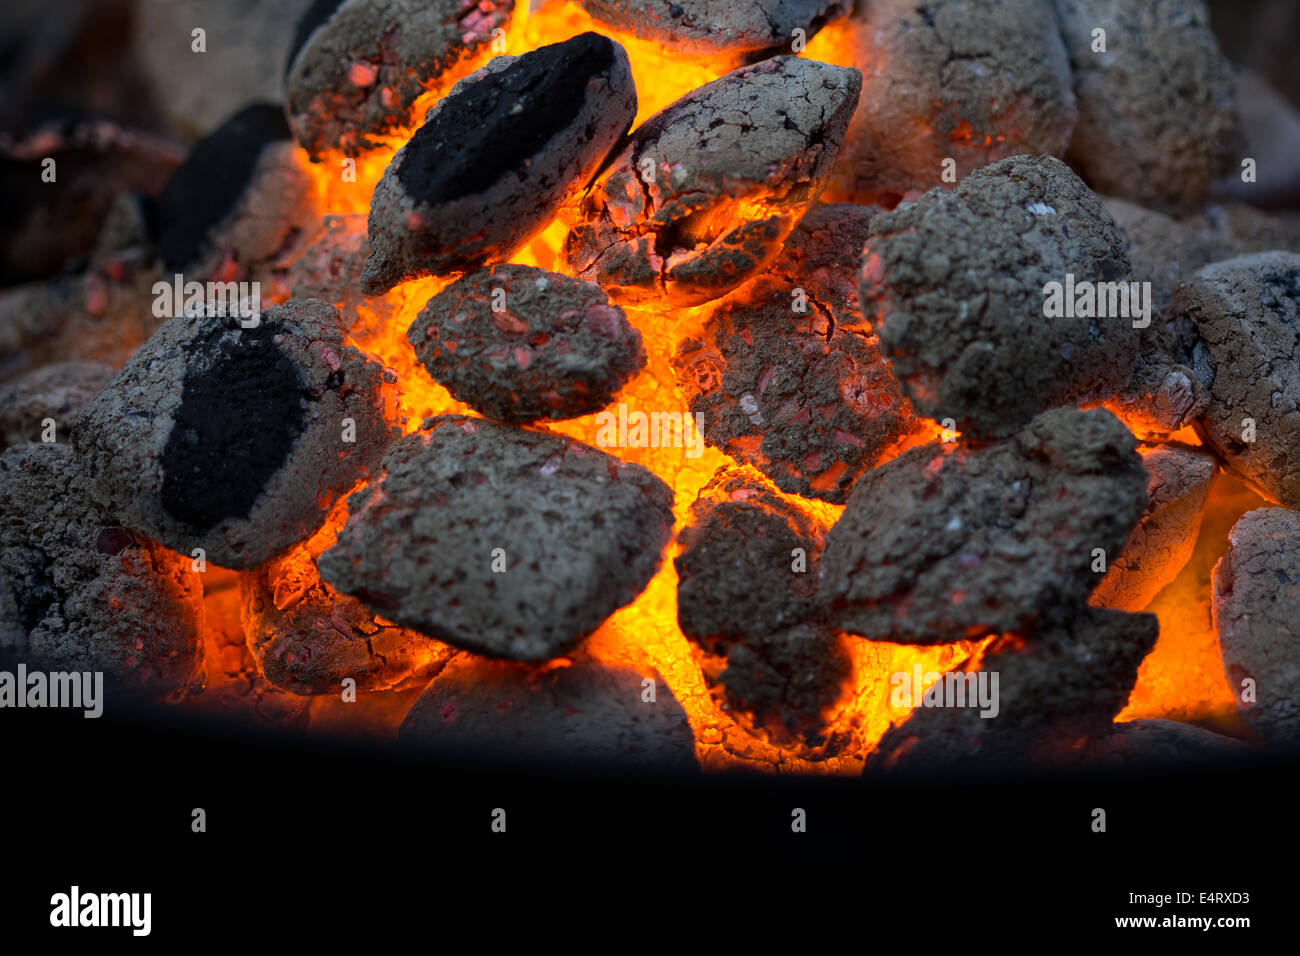 Embers of coal - Stock Image